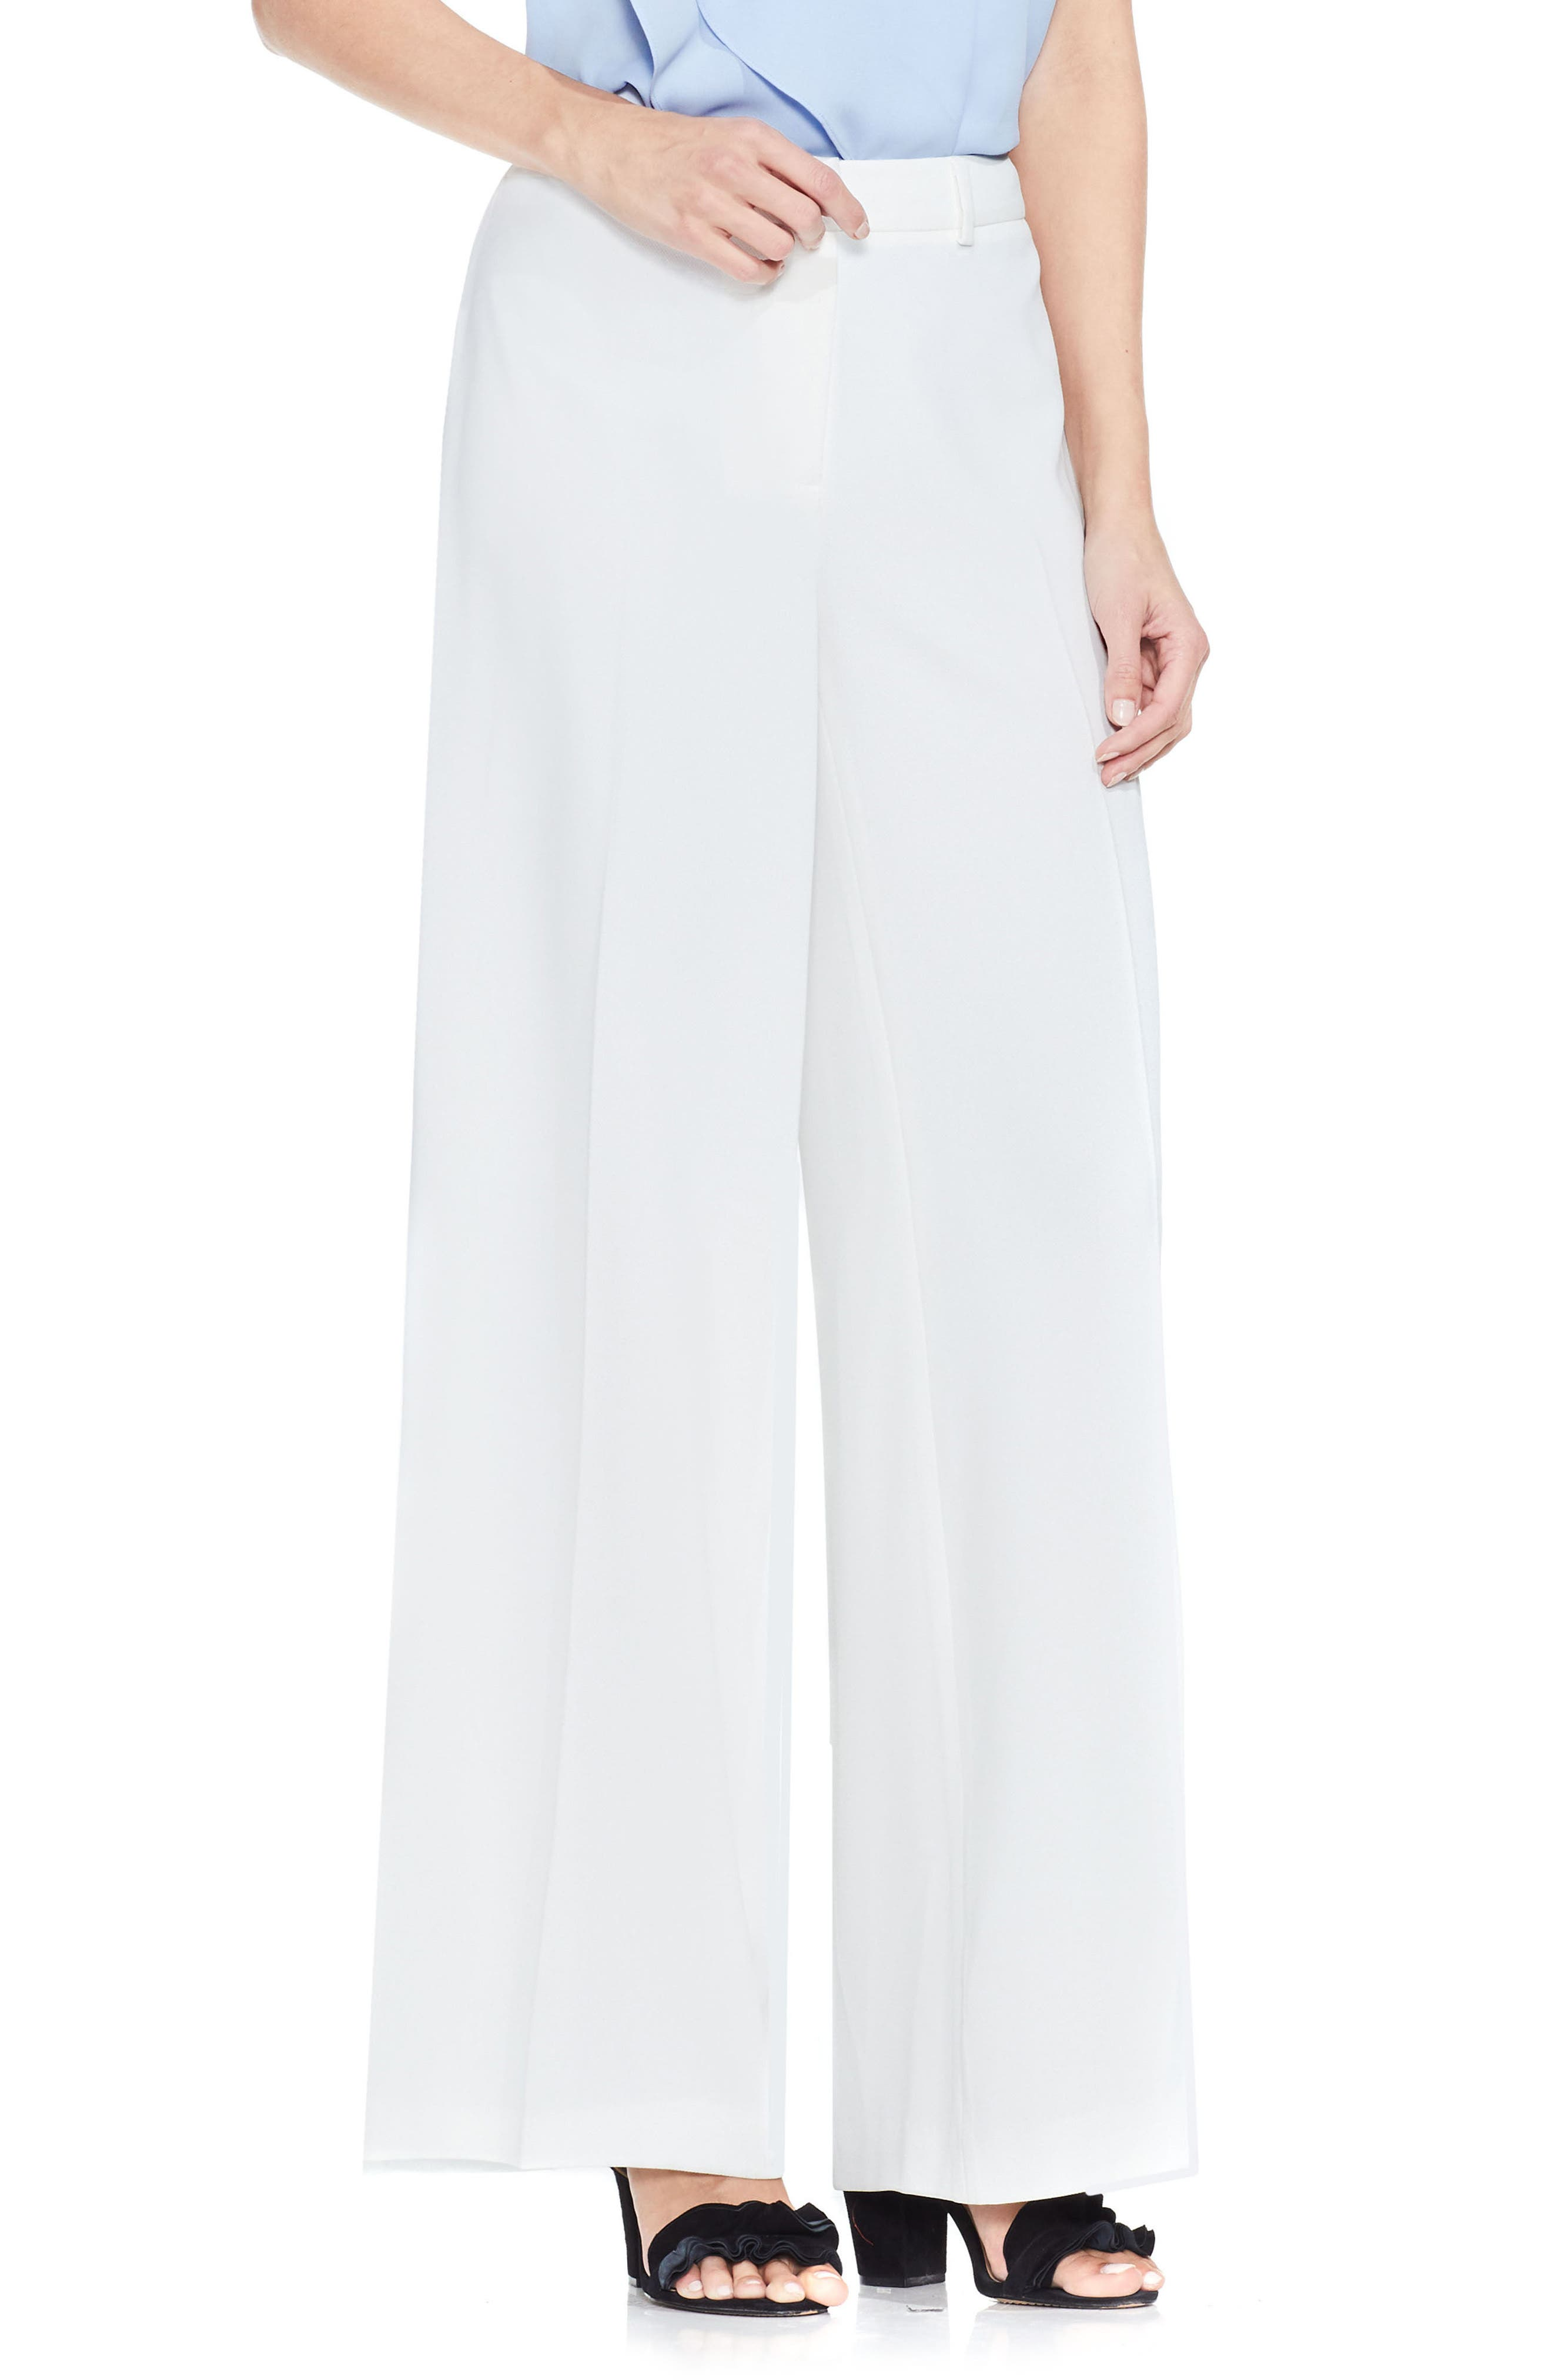 Vince Camuto Texture Base High Waist Pants